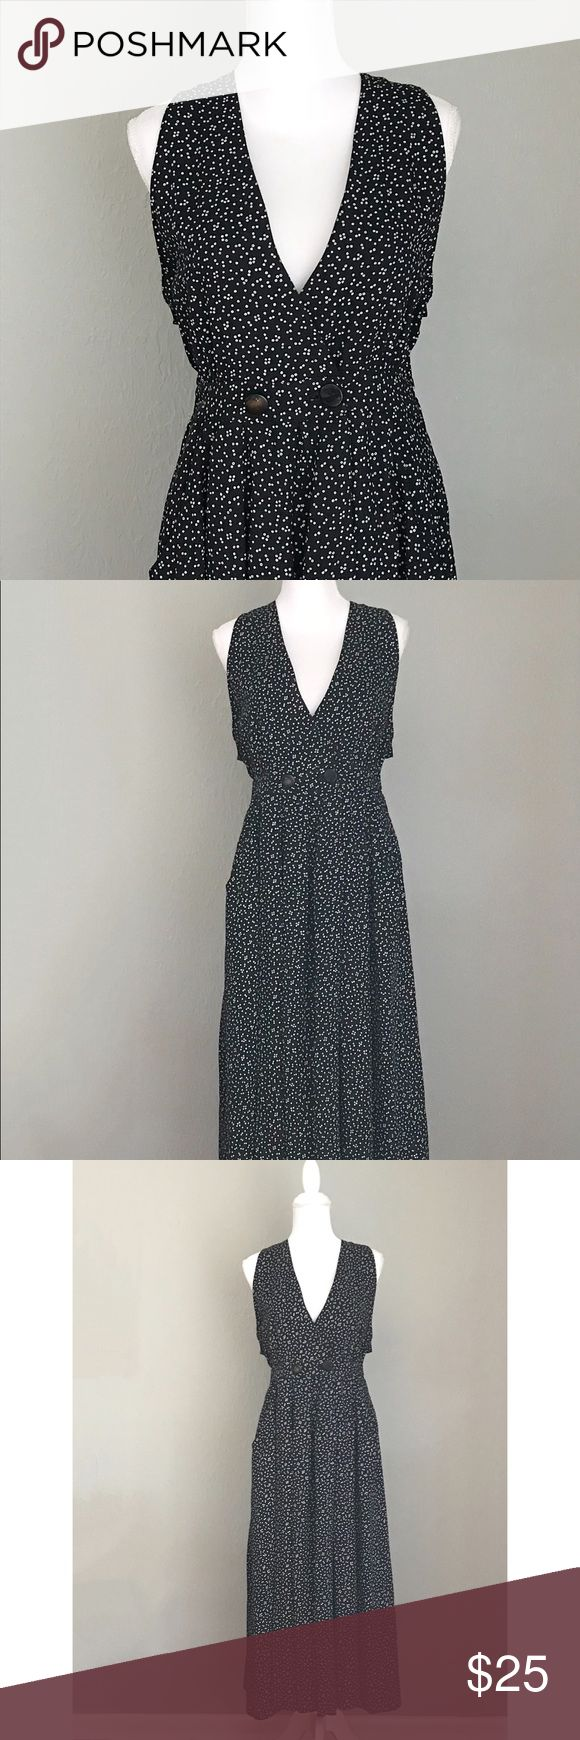 1980s Polka Dot Jumpsuit Black Polyester jumpsuit with white polka dots. Wide legged with pockets. Great Condition! Fits like modern M-L. Vintage Other